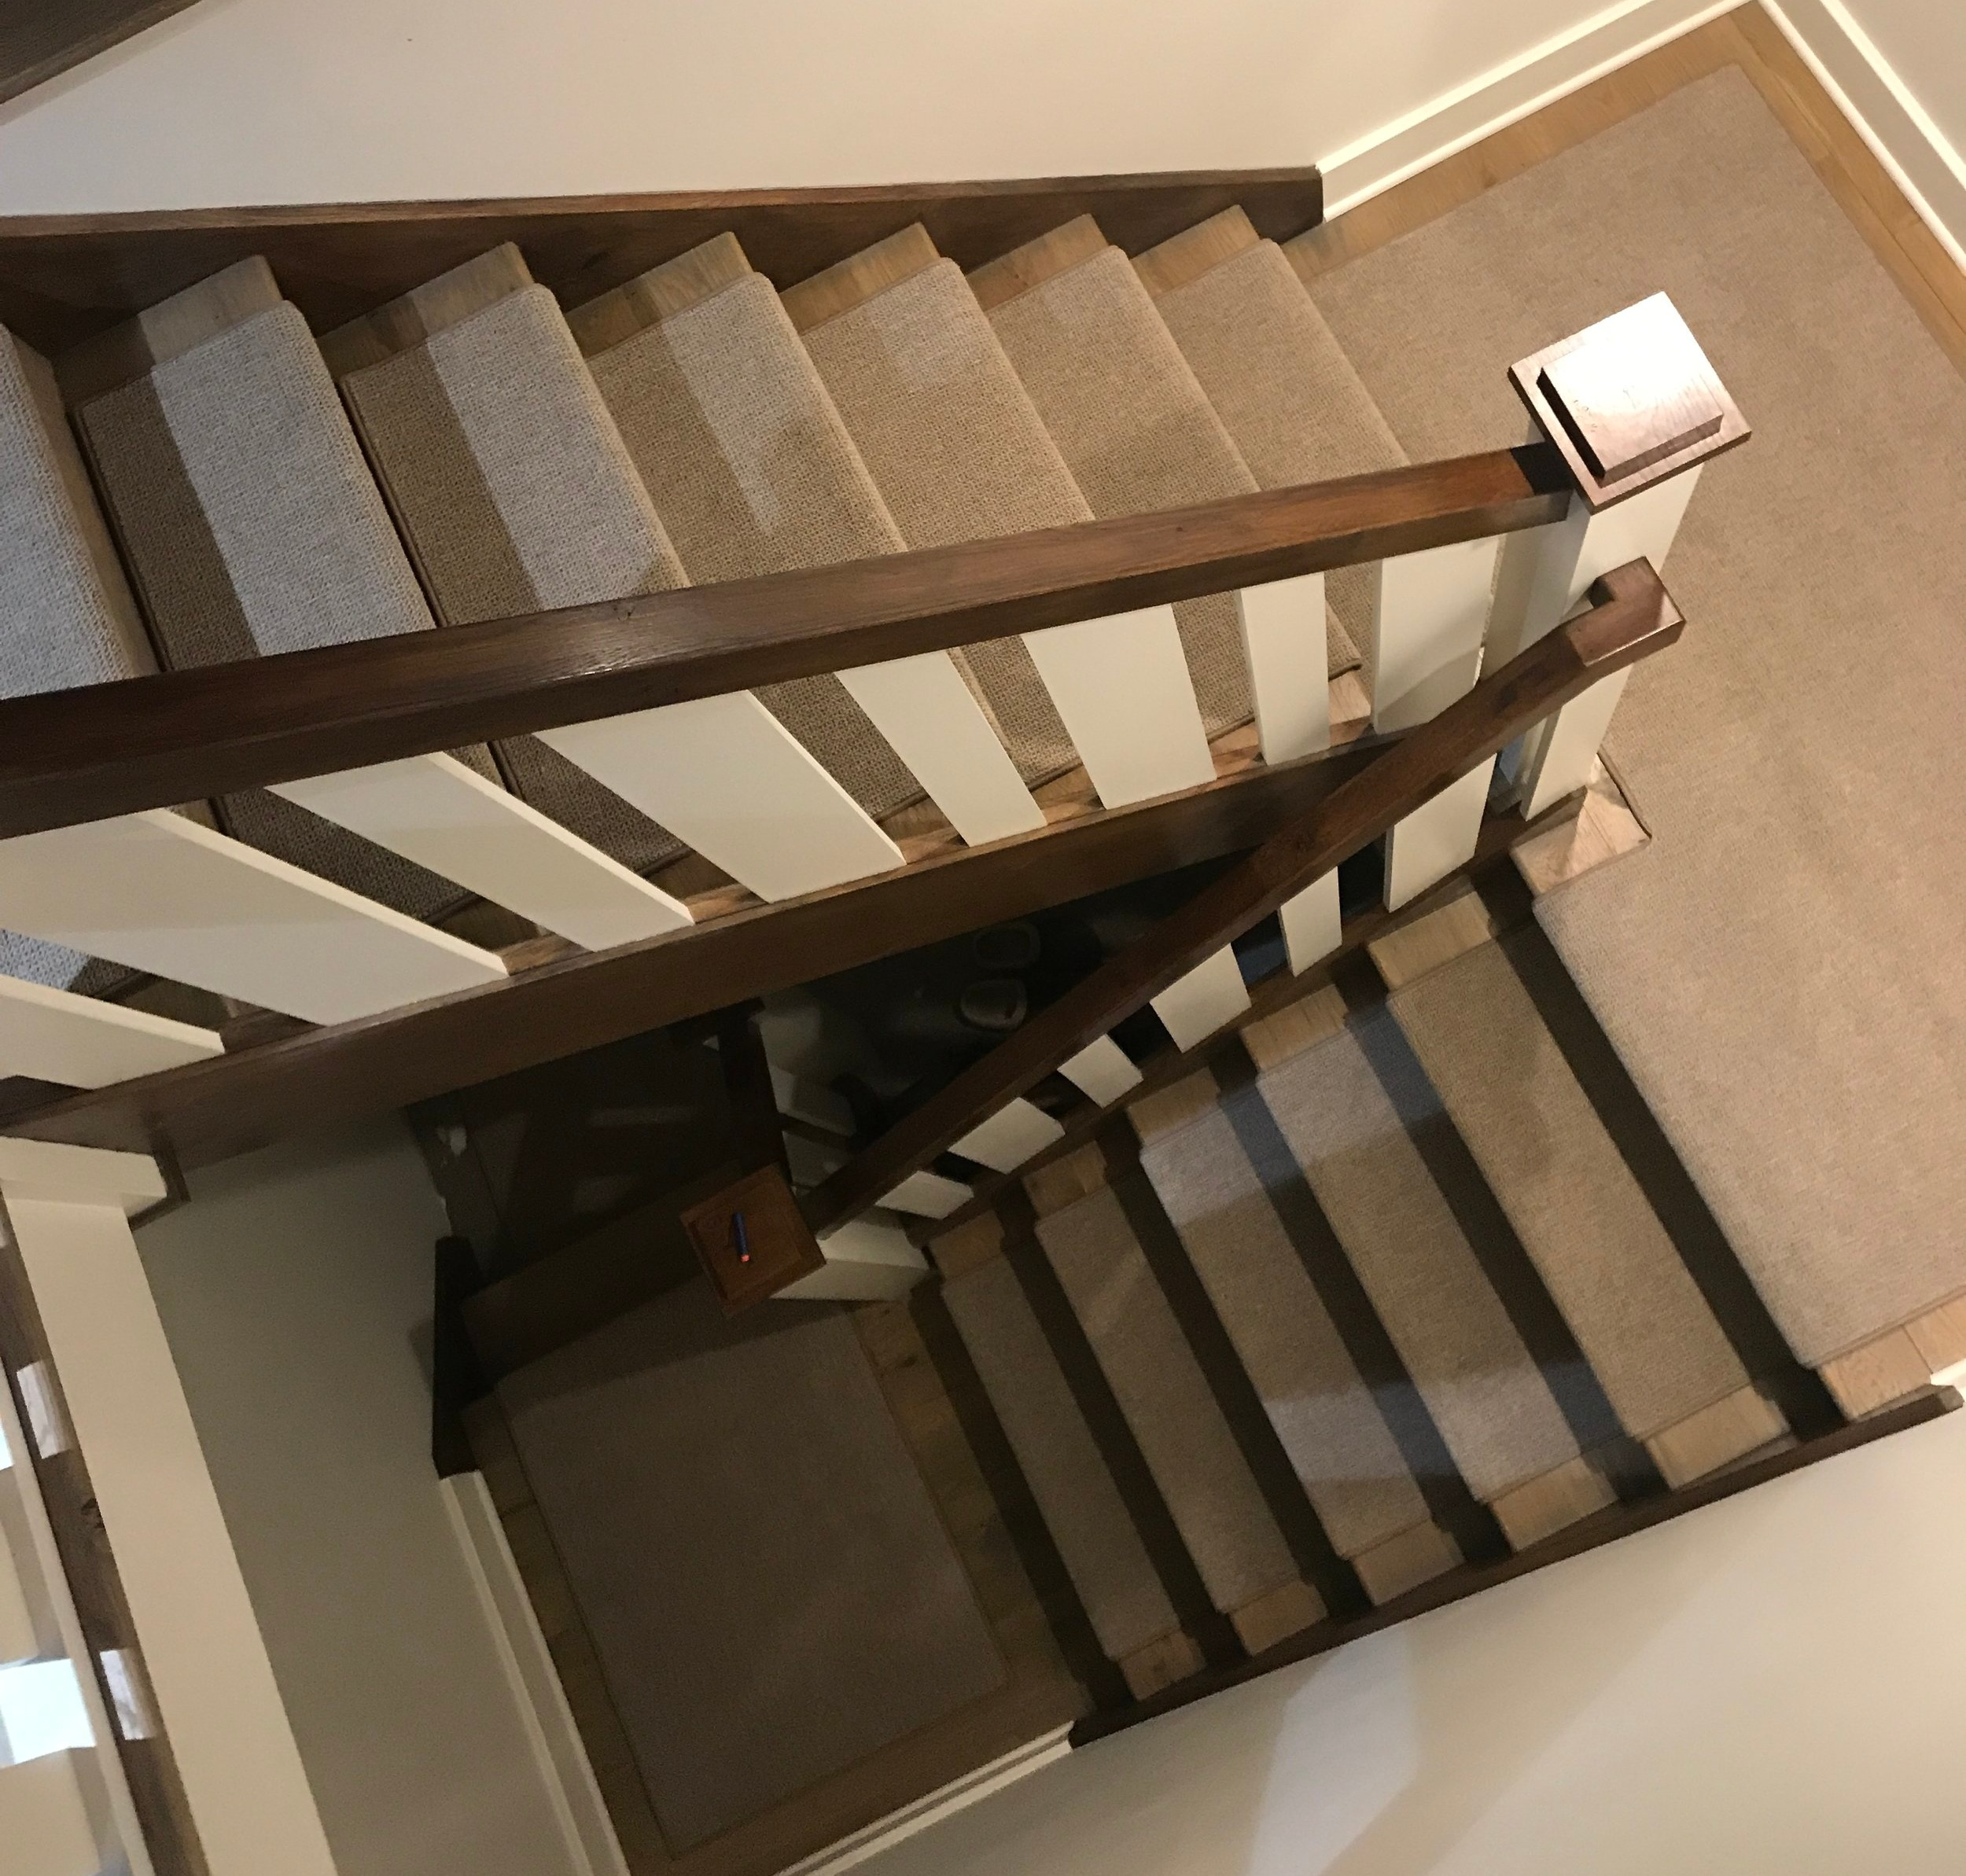 Welcome to Oak Valley Designs - We create custom wrap around indoor carpet stair treads, runners, and landings to specifically fit all stairs in your home or business. Our indoor carpet stair treads are handcrafted one by one to provide our clients with the most luxurious and effective stair tread on the market.